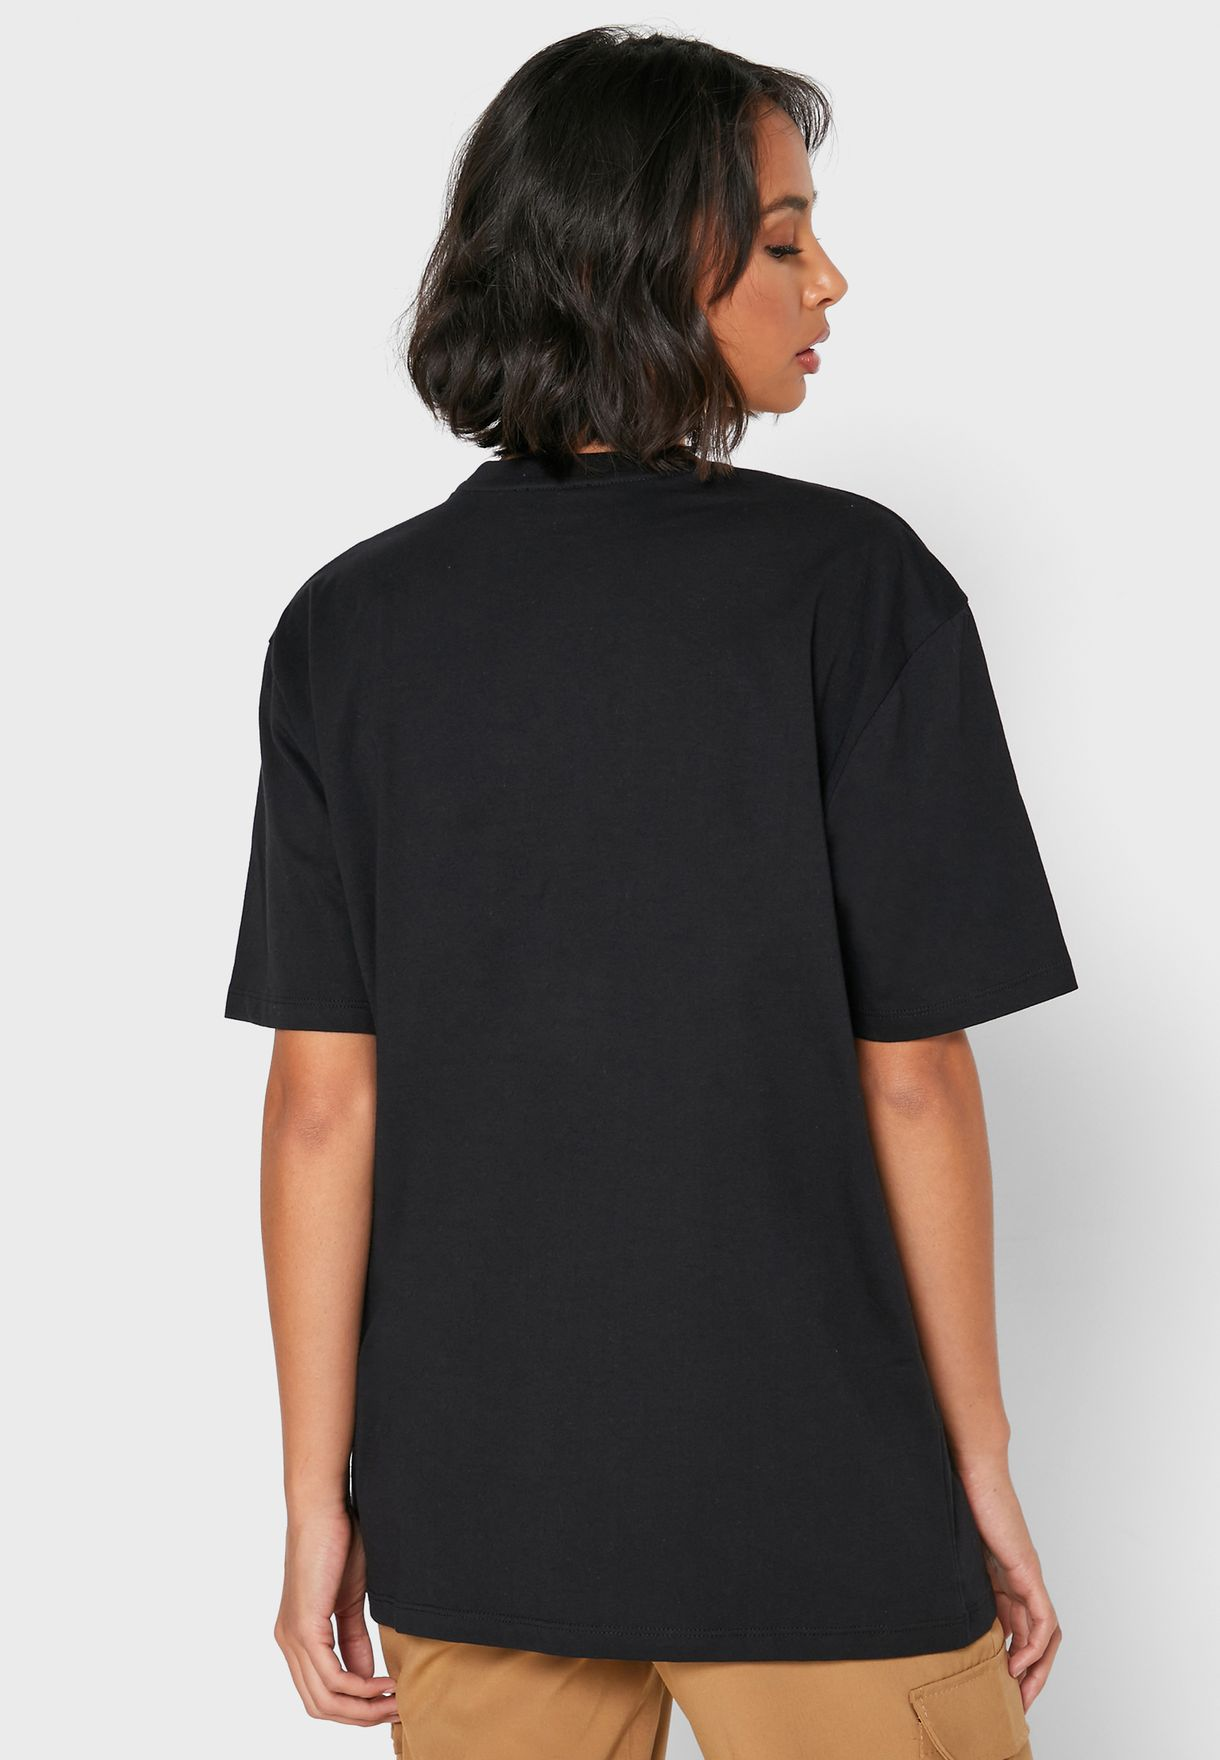 Oversized Graphic Back T-Shirt